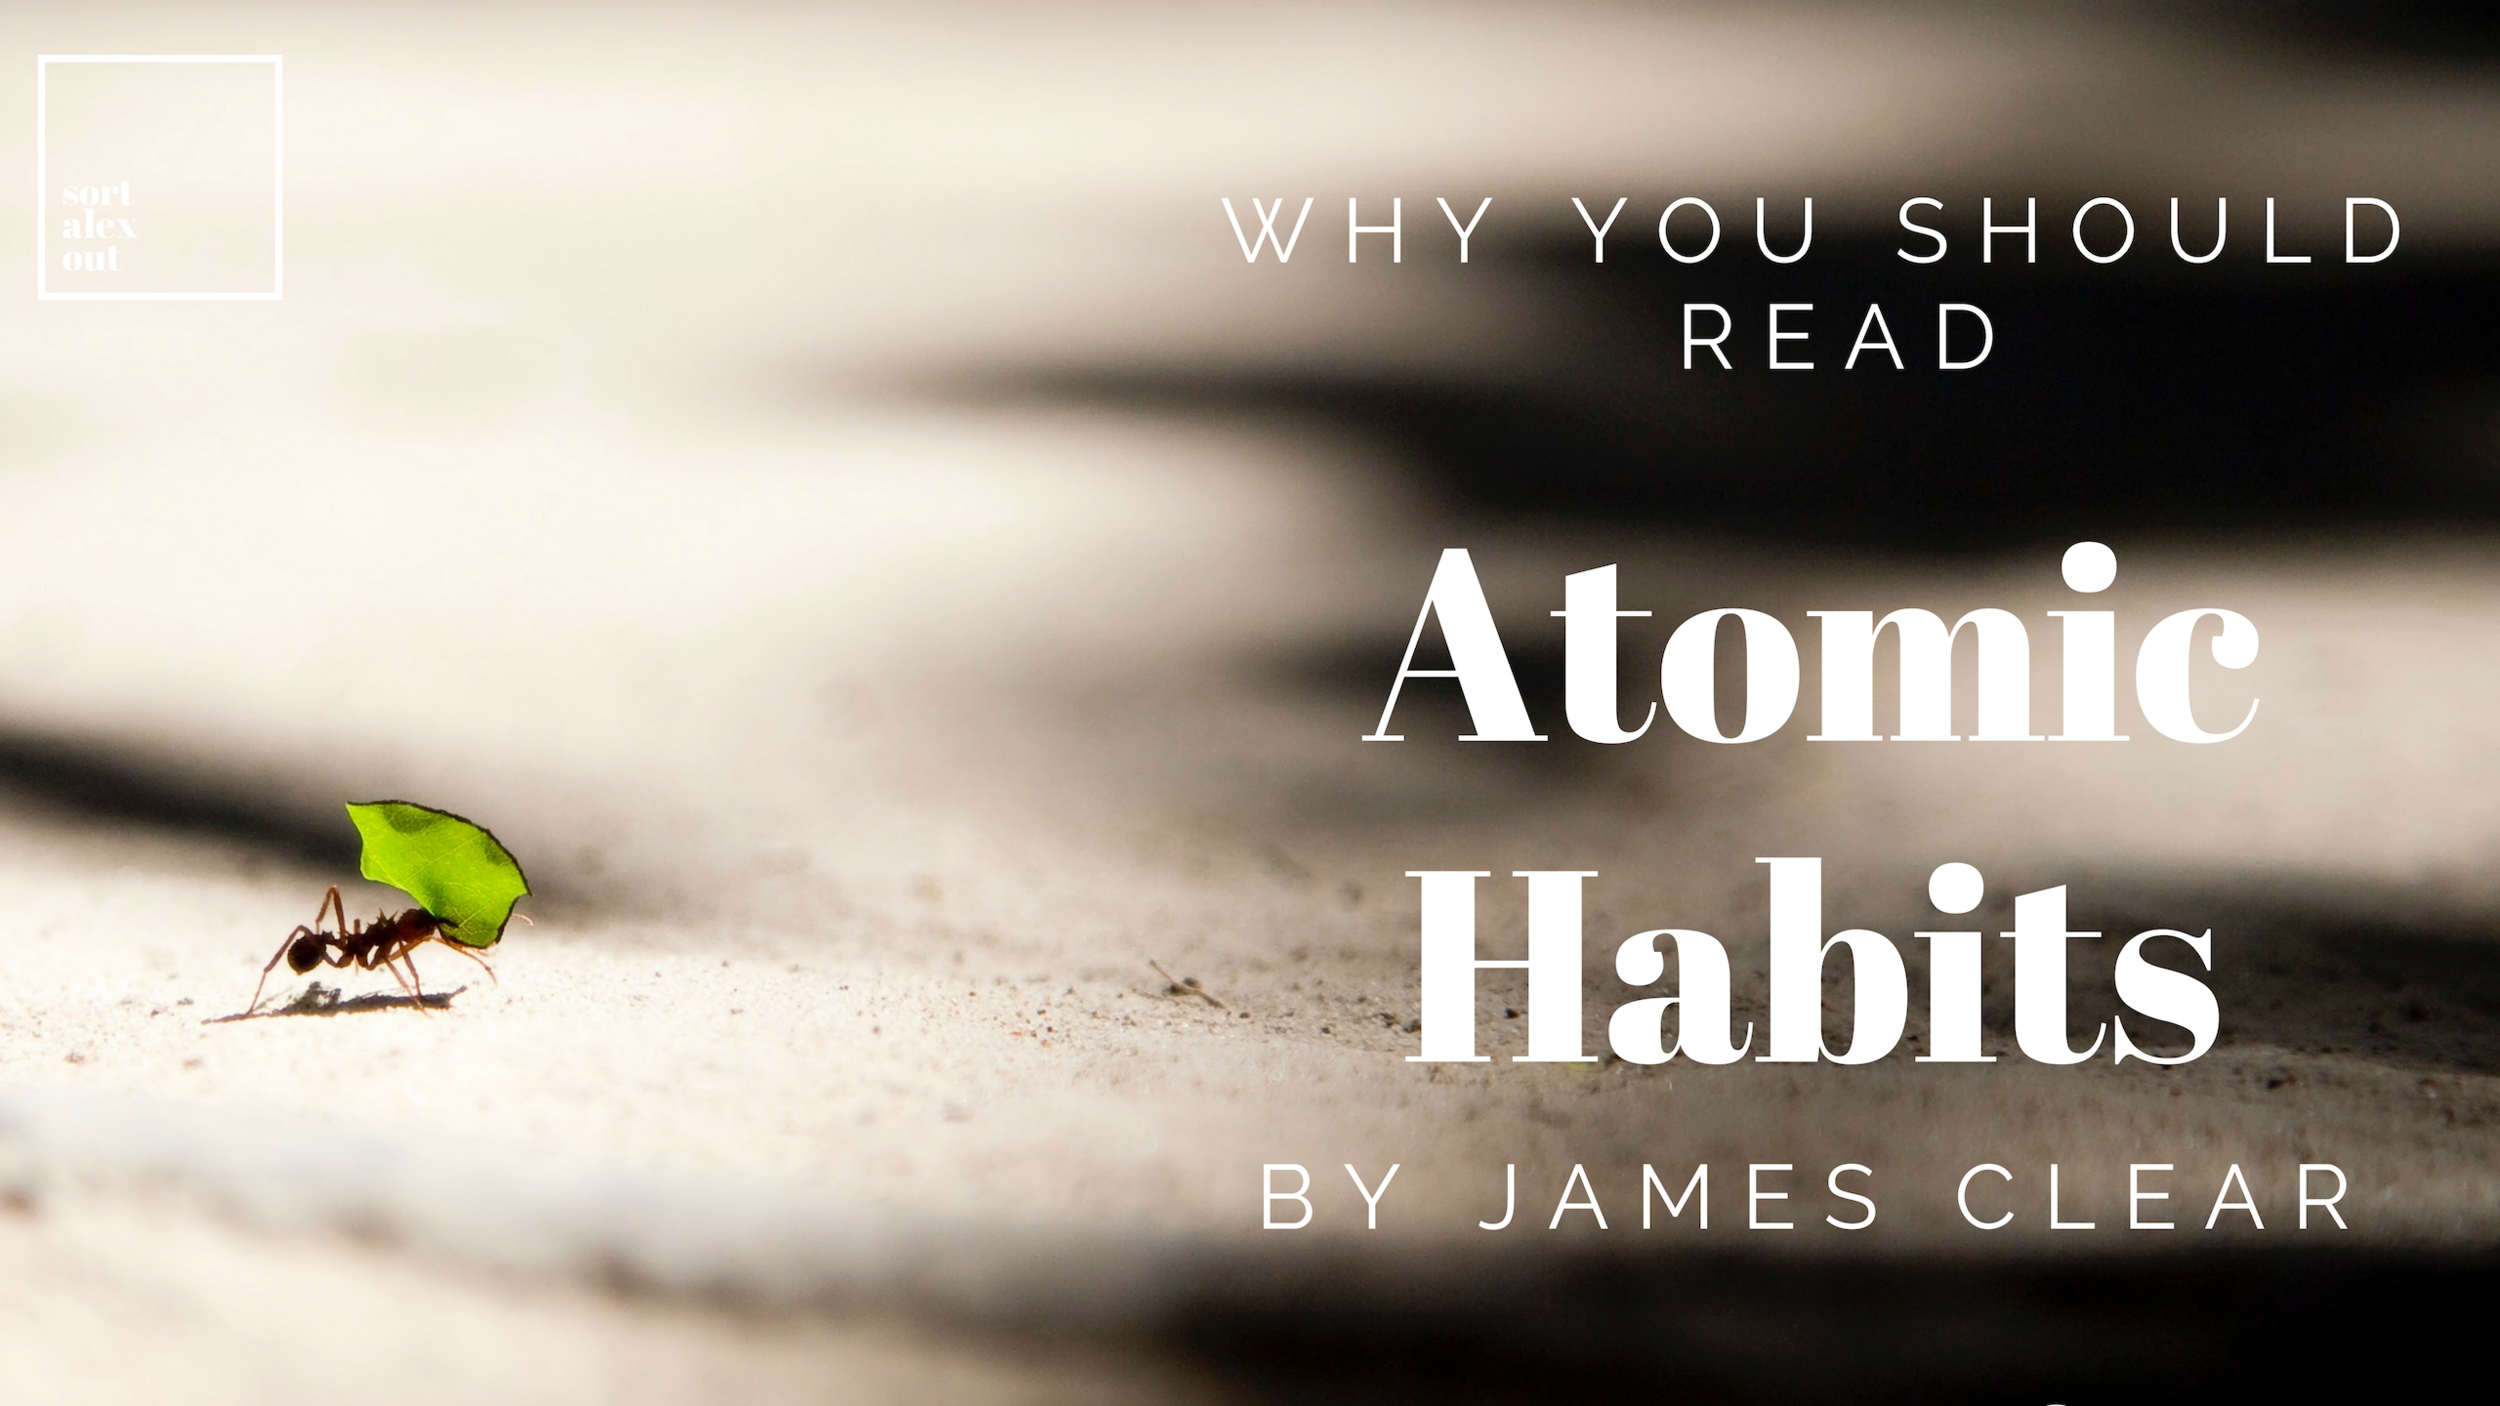 Why you should read Atomic habits.png